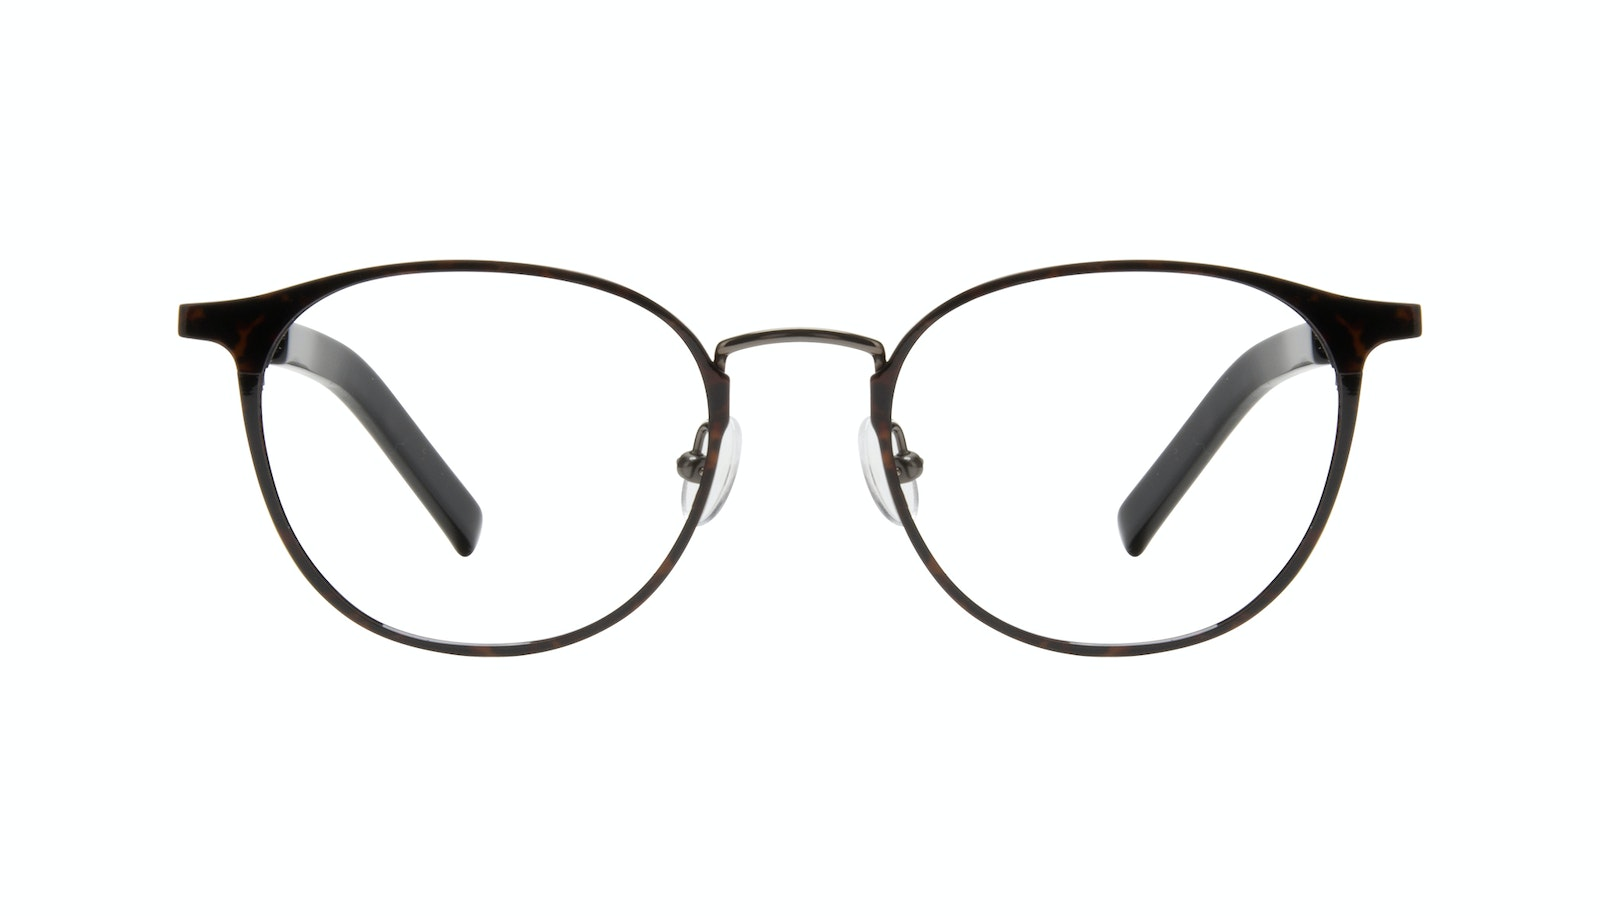 Affordable Fashion Glasses Round Eyeglasses Men Point Tortoise